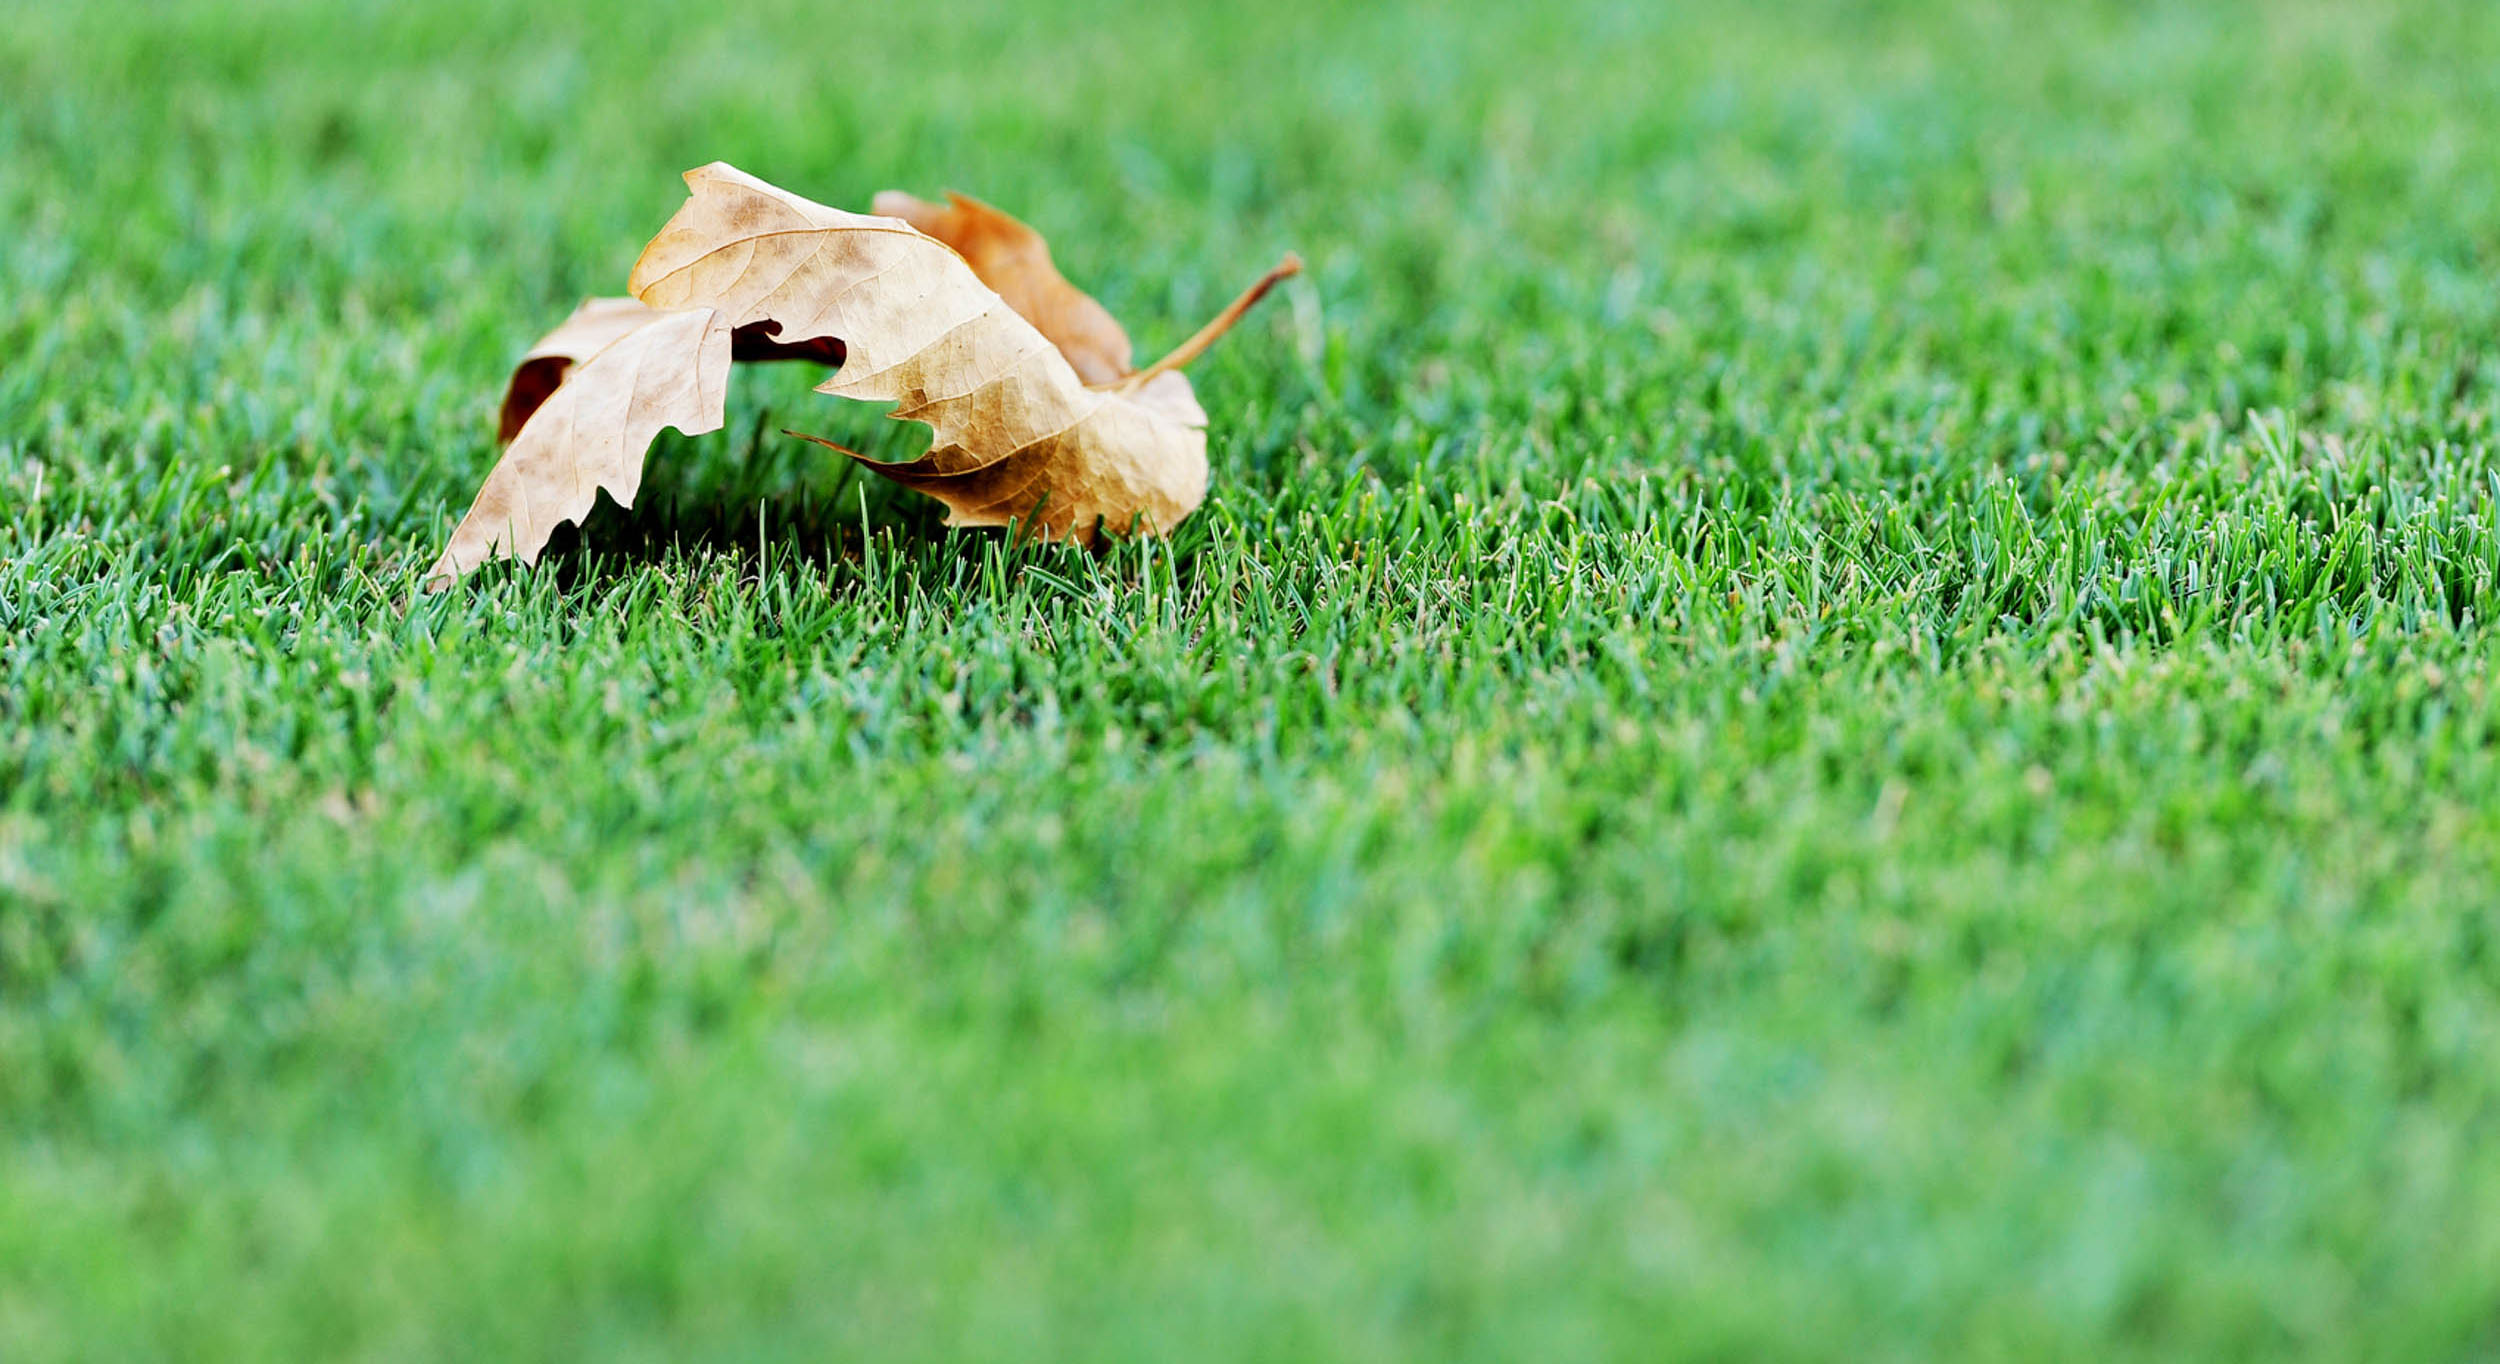 Aerating and Overseeding Your Lawn In Fall - Featured Image